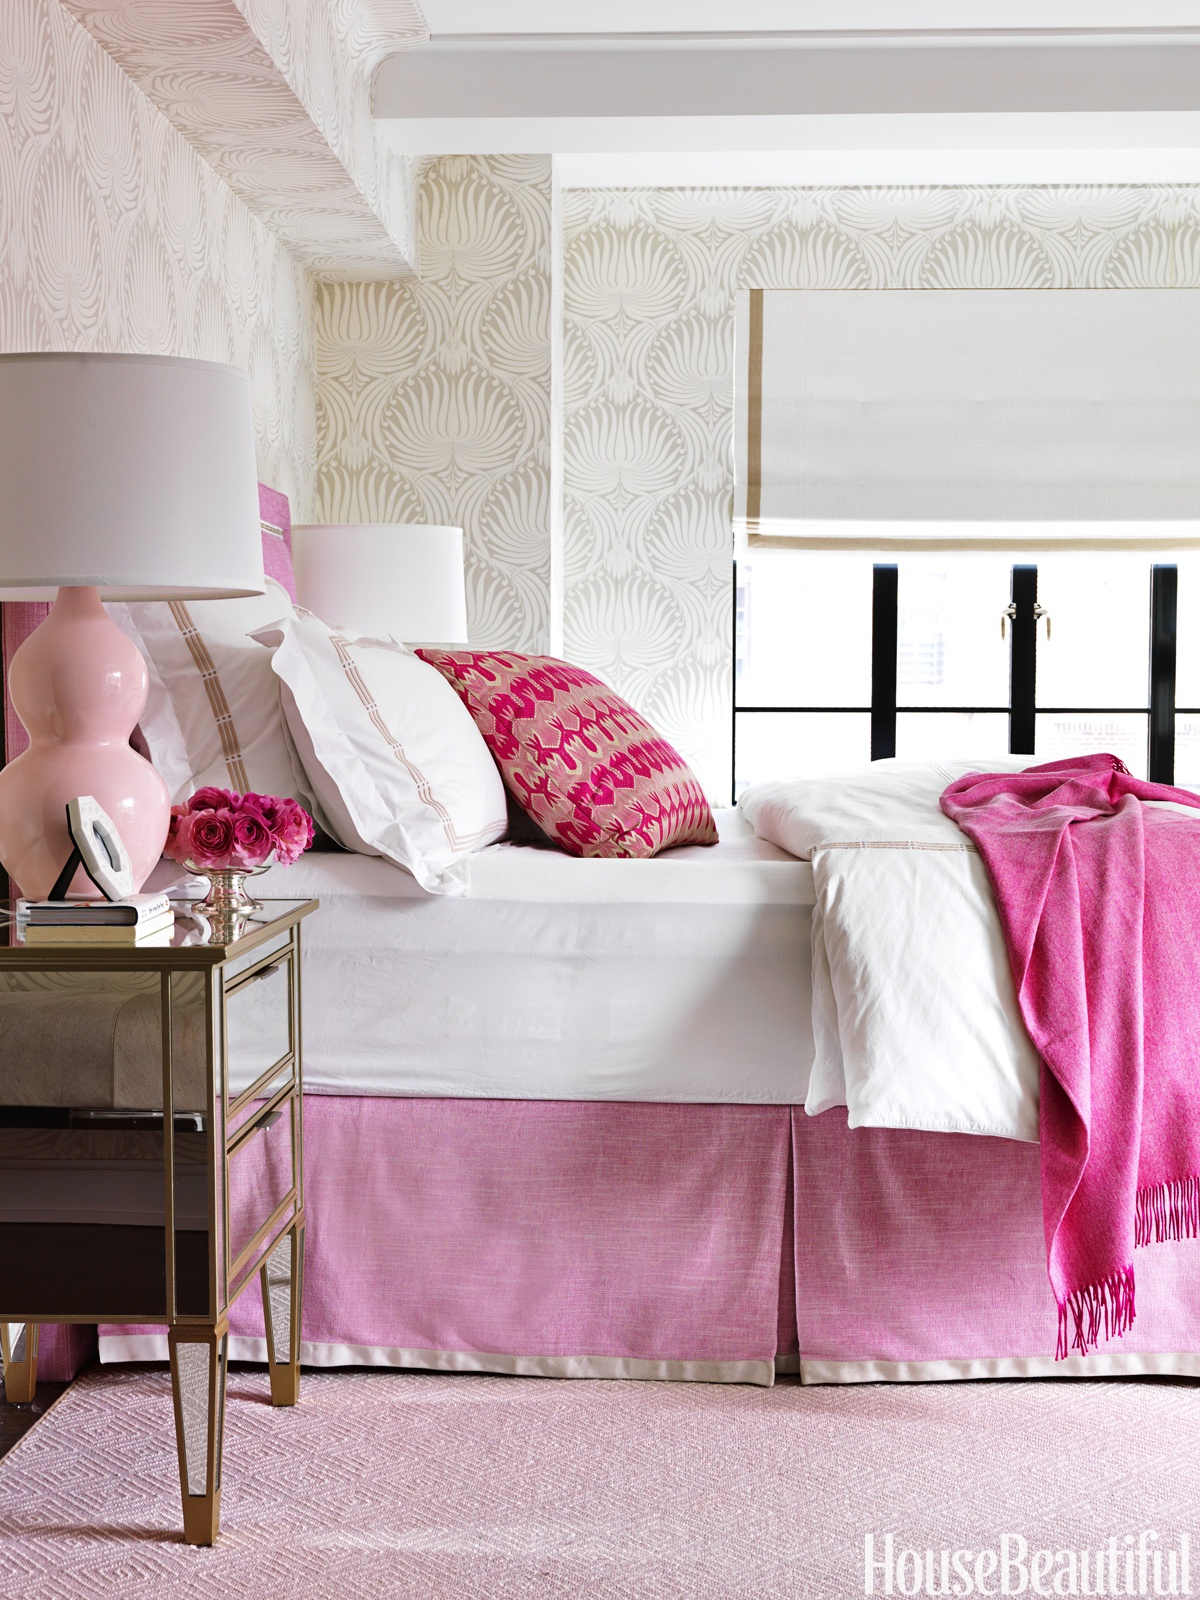 Pink geometric rug in pink master bedroom designed by Christina Murphy featured in Asmara Interview with the designer